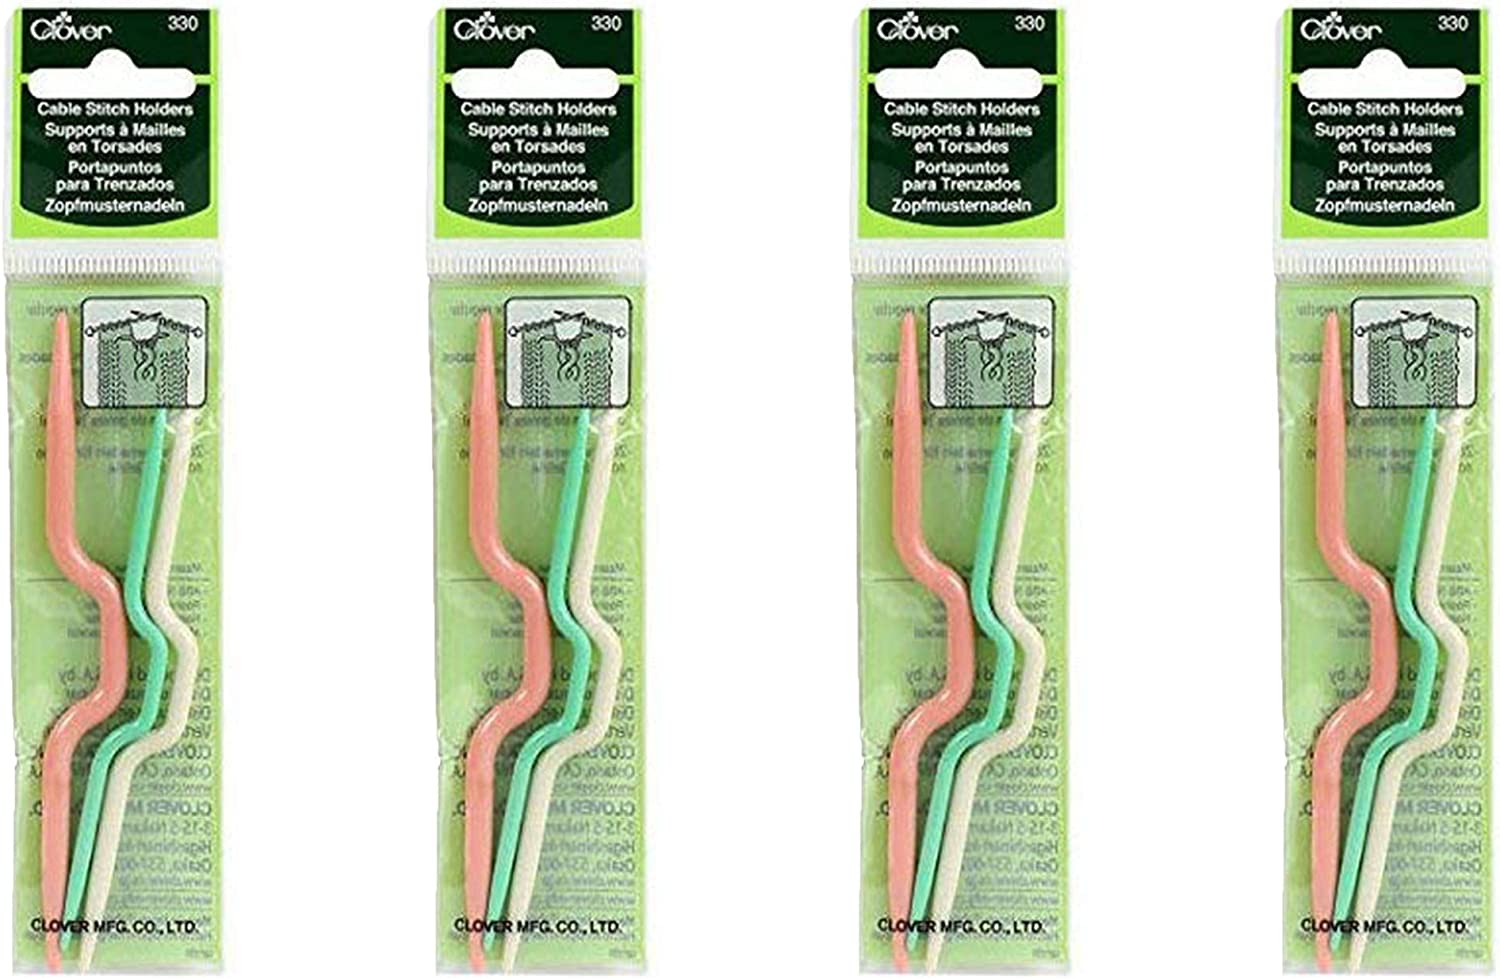 Clover CABLE STITCH HOLDERS 330